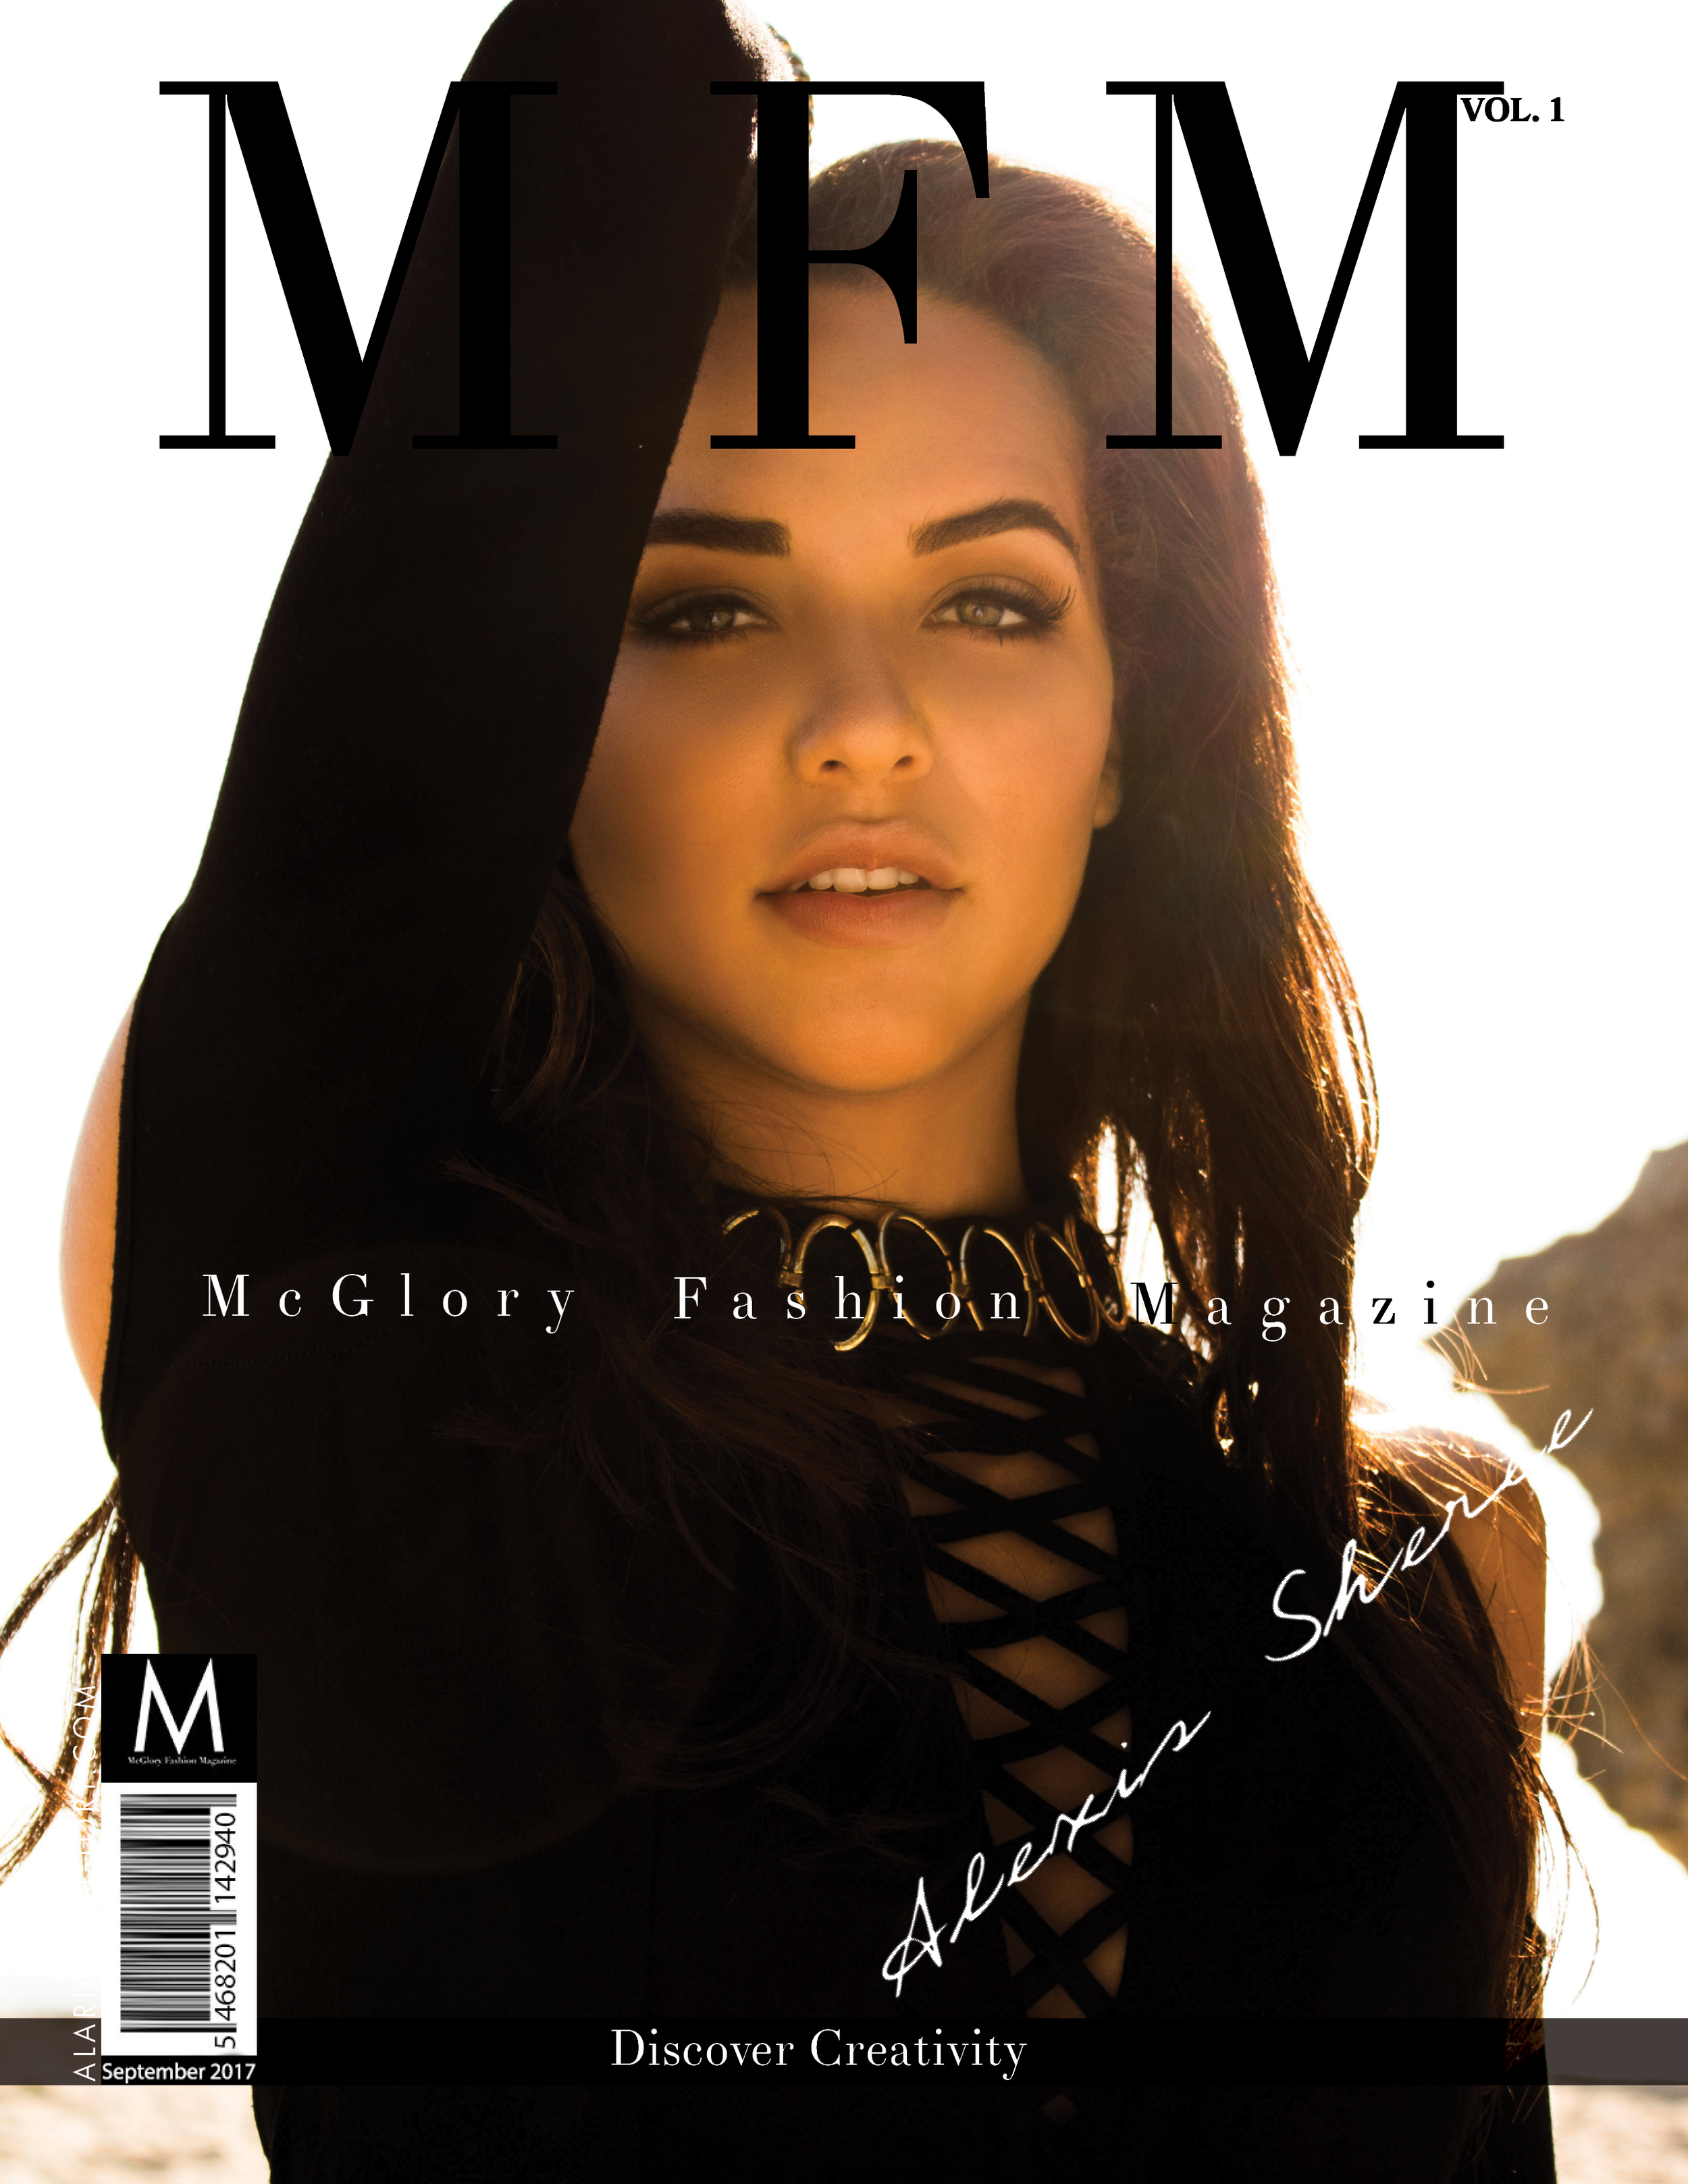 MFM first issue 6-edited 106 Part 1 space 1-1-1-1 PDF VOL 1 NEW NEW.png